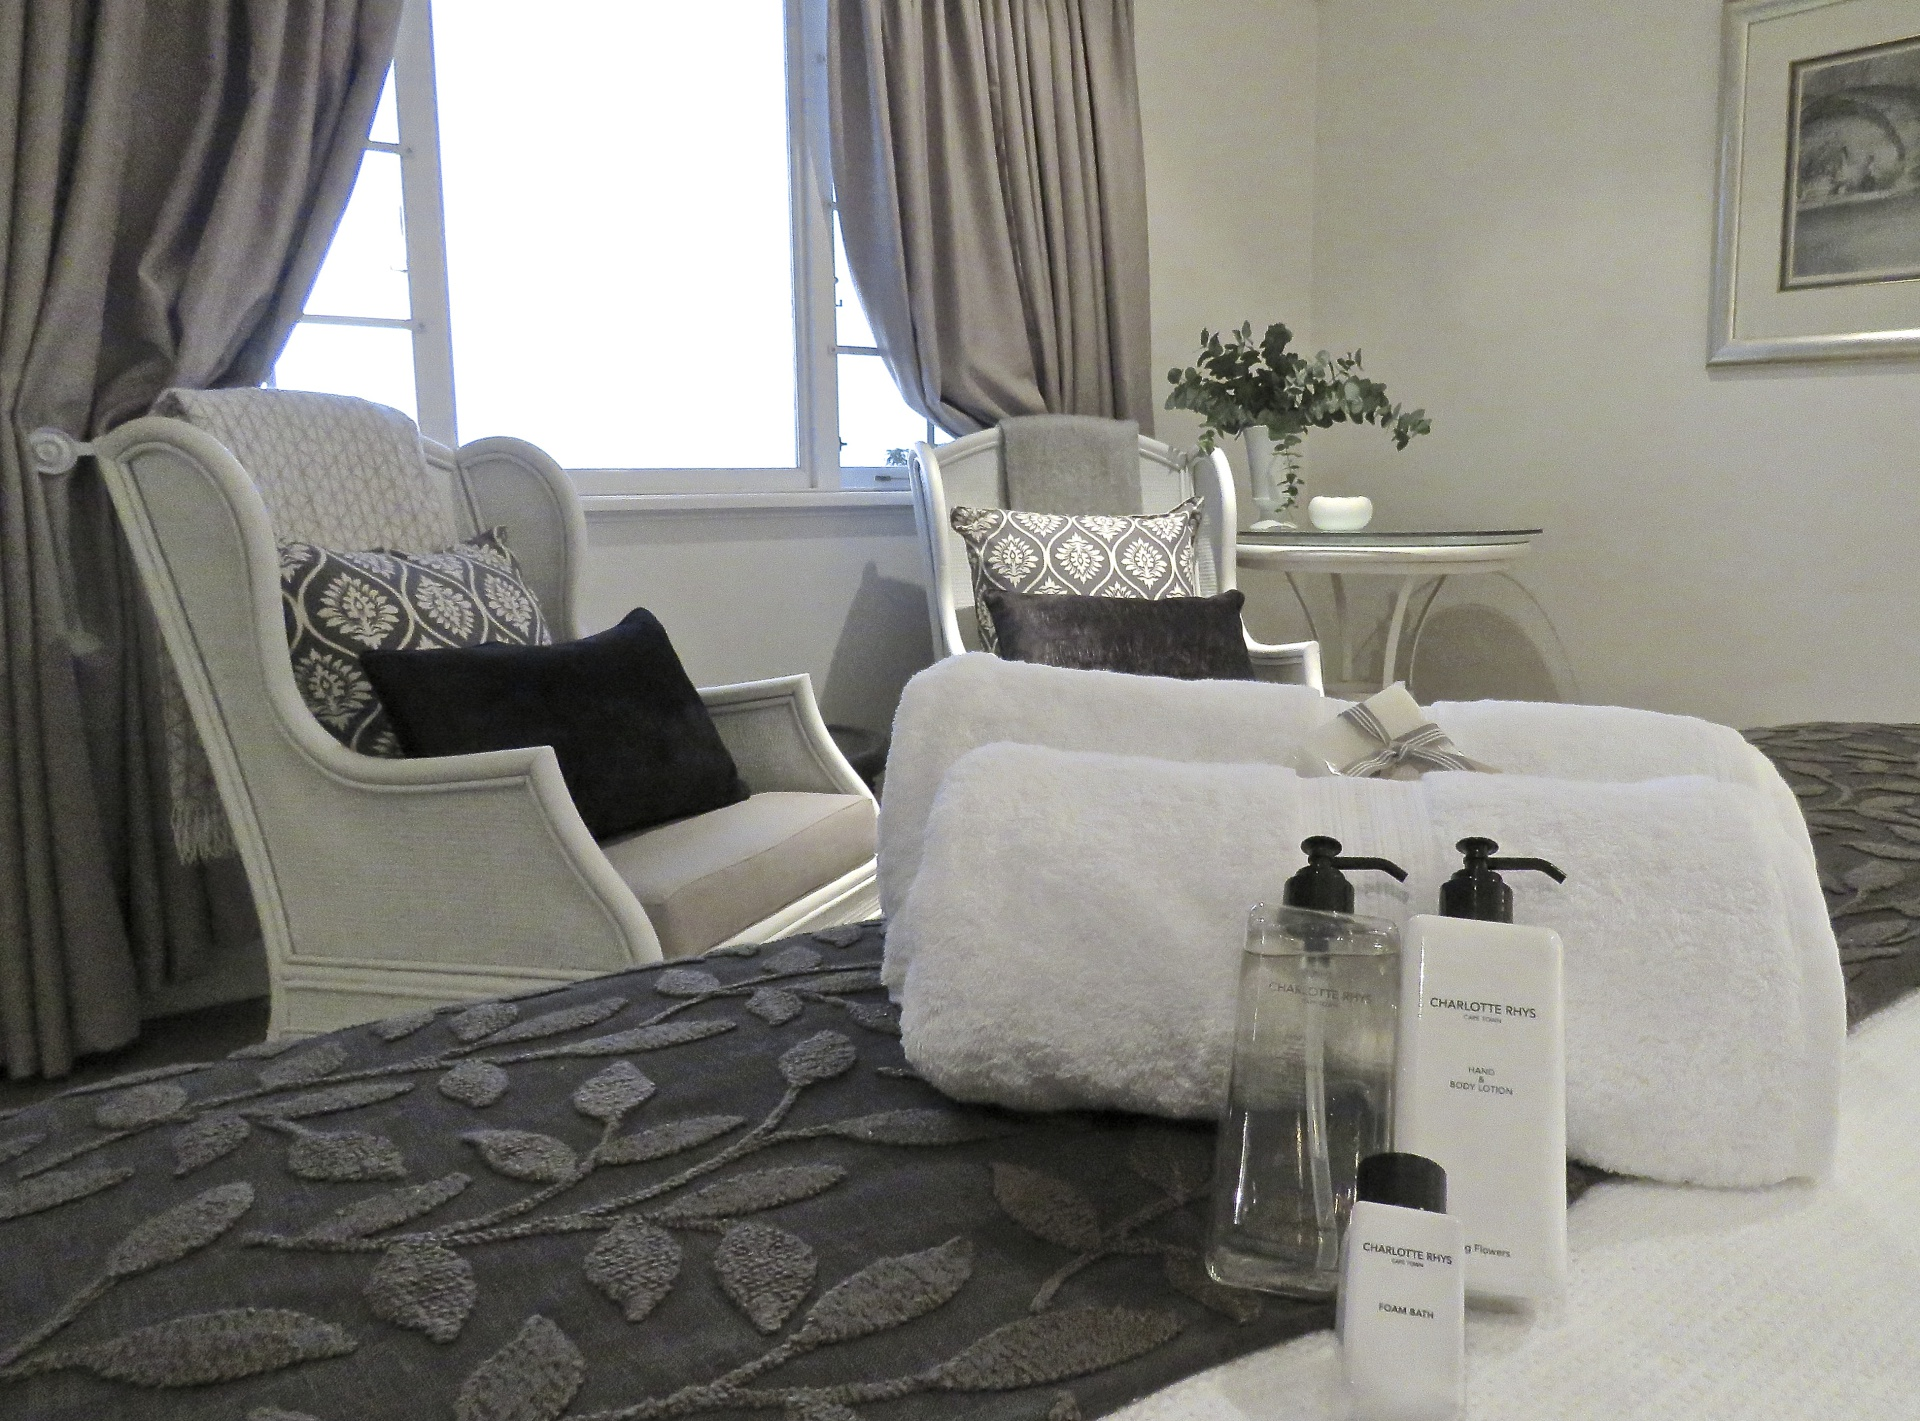 Karoo Suite - Southey House